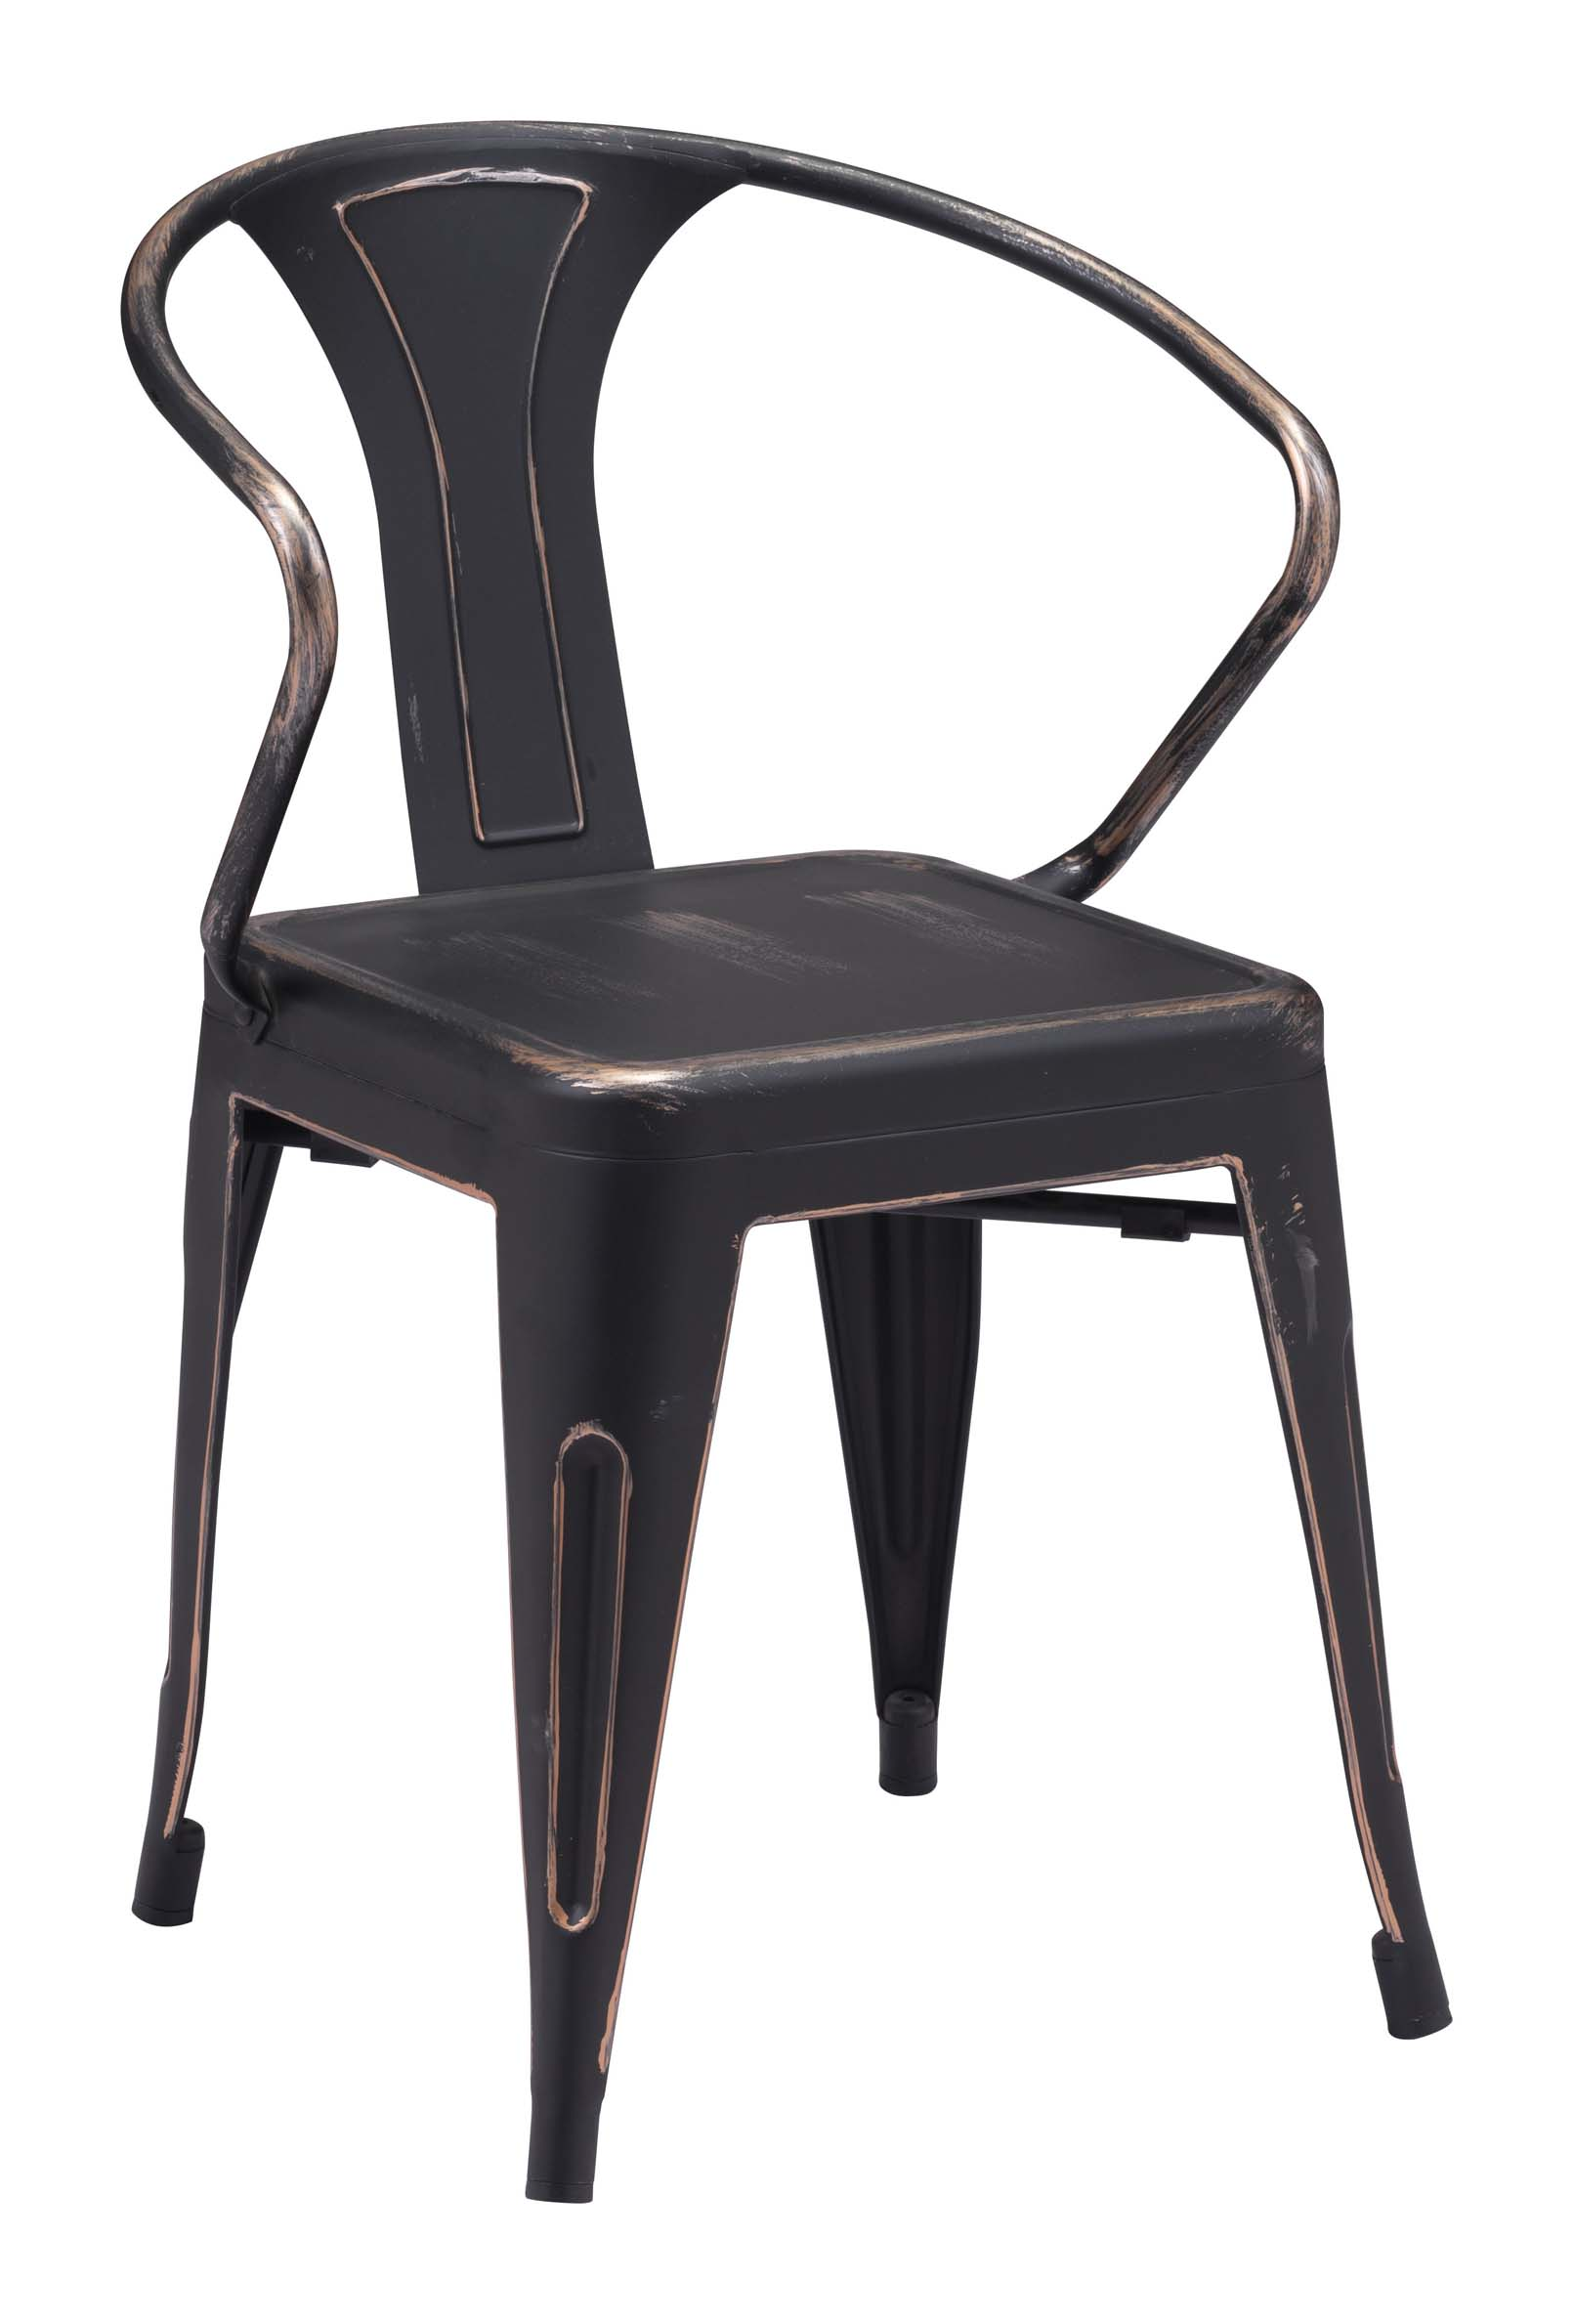 dining chair antique black gold